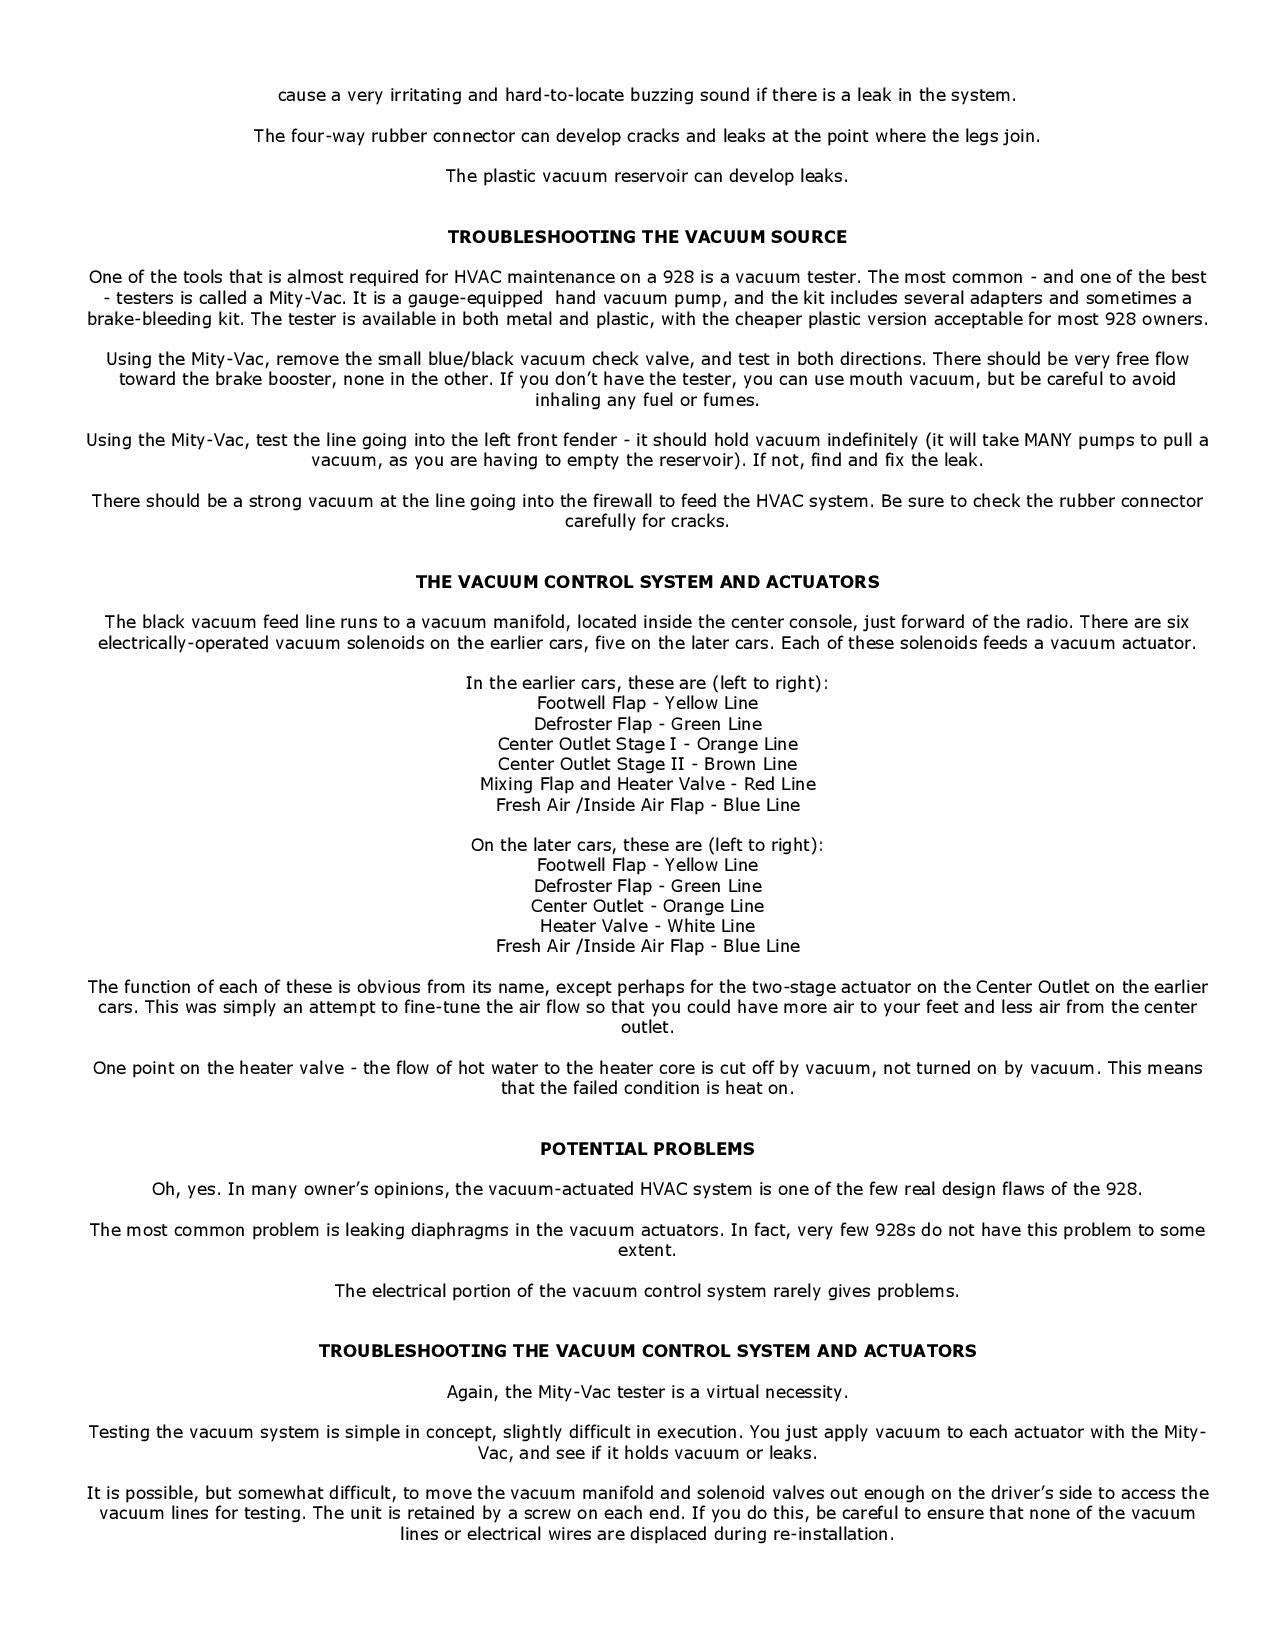 Troubleshooting the Refigeration System pg6